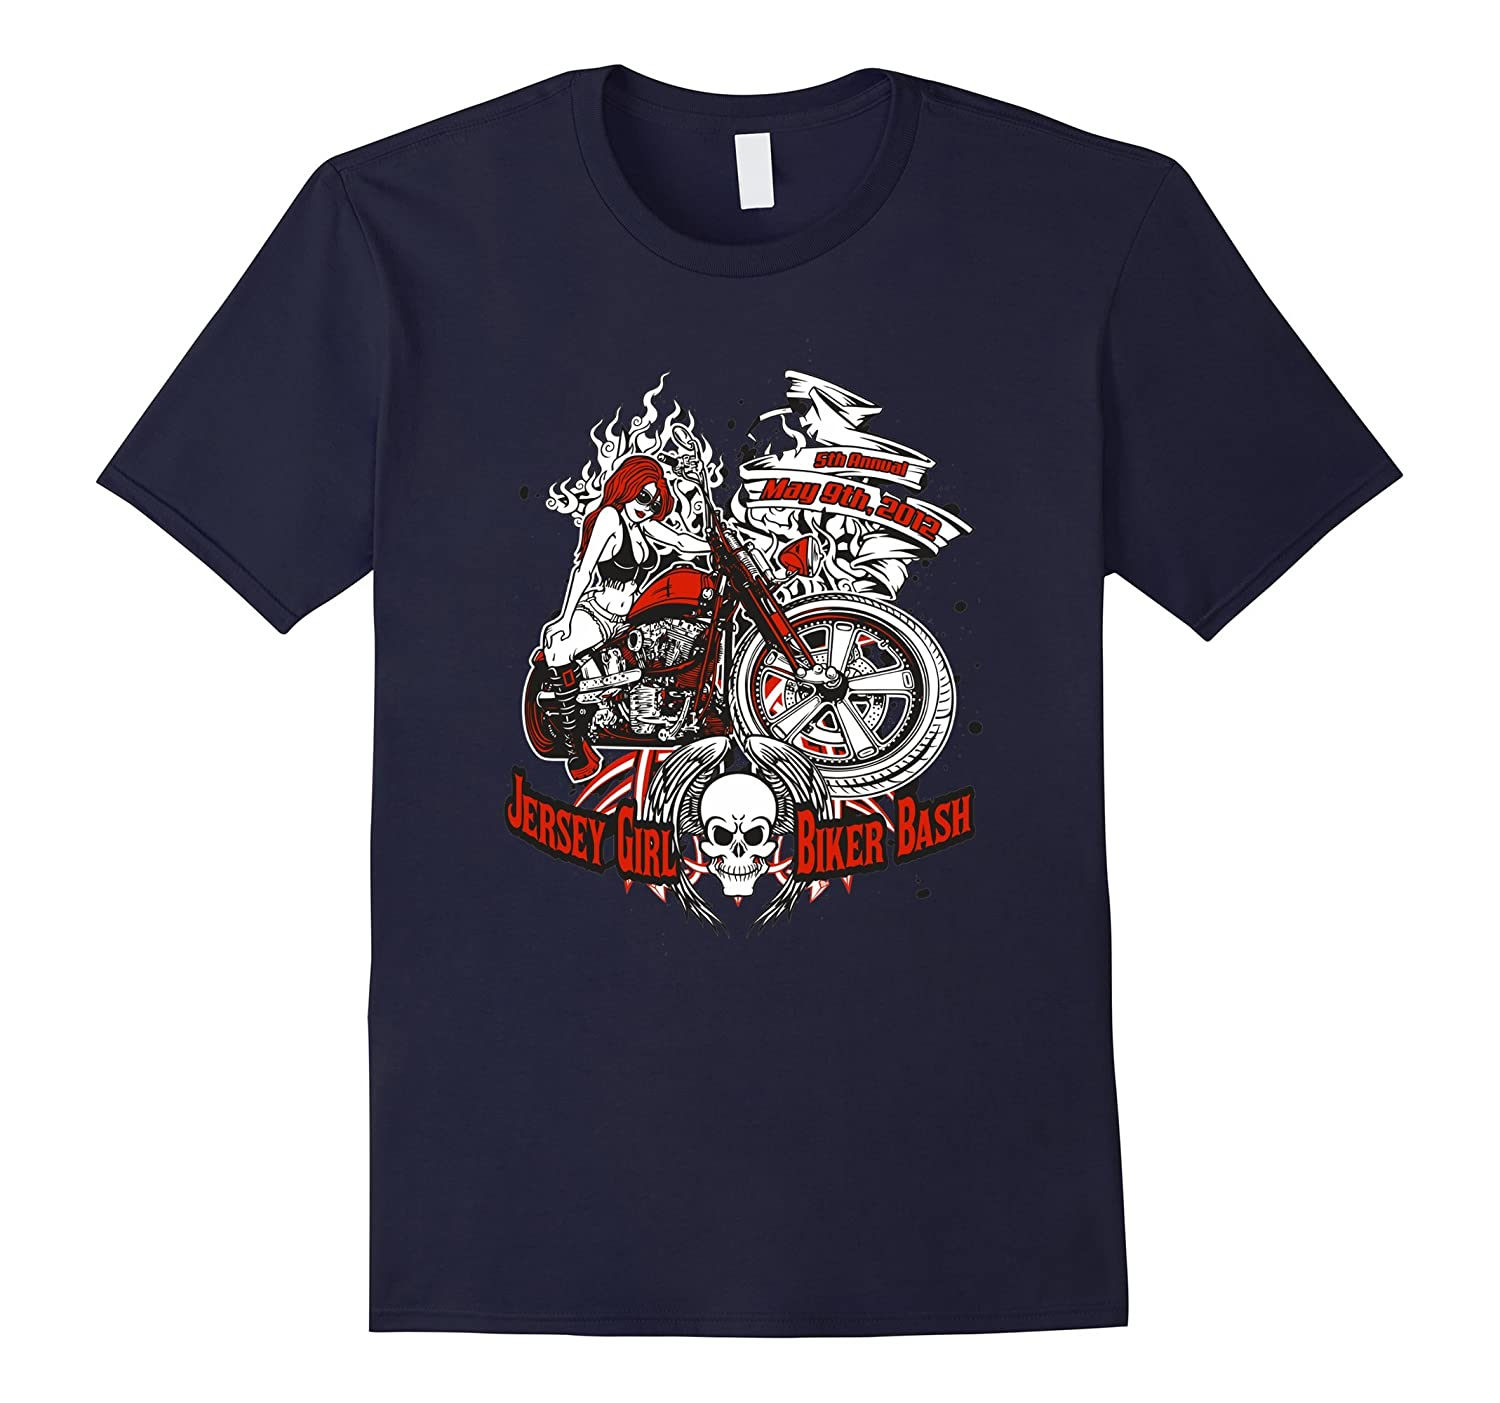 Jersey Girl Biker Bash T Shirts For Women Graphic Tees-BN